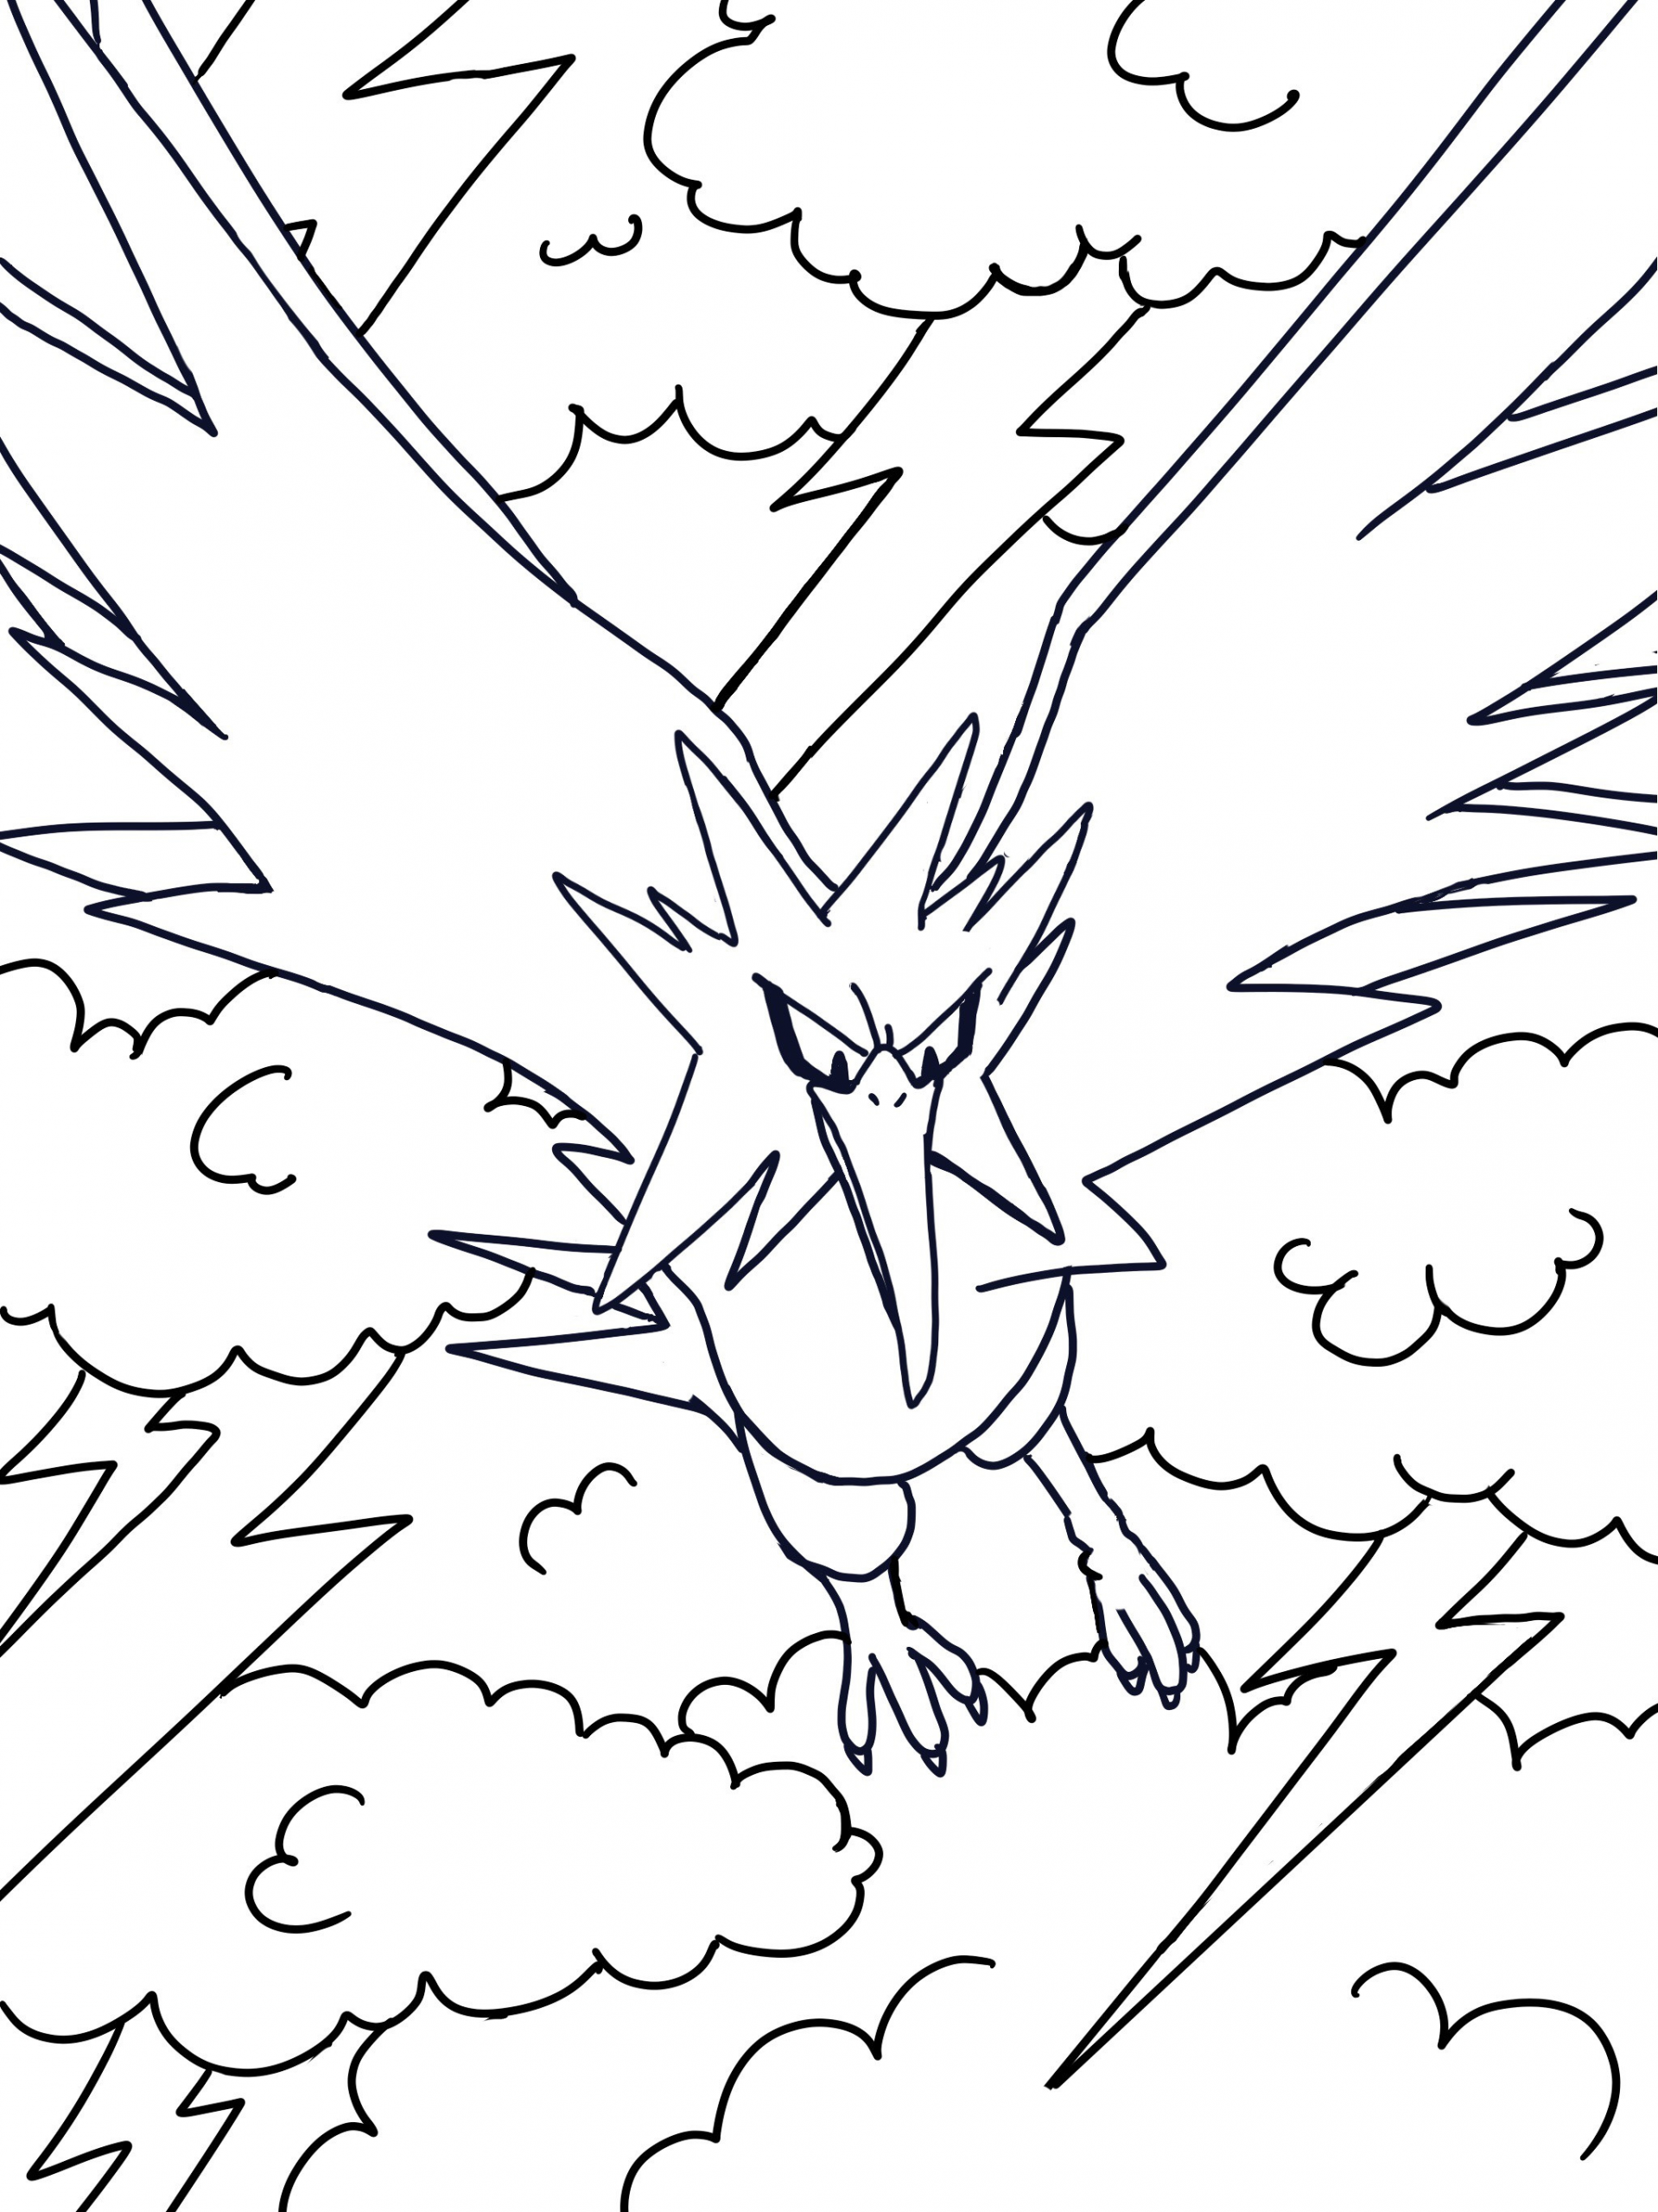 Pokemon Litten Coloring Page Youngandtae Com Pokemon Coloring Pages Coloring Pages Inspirational Coloring Pages